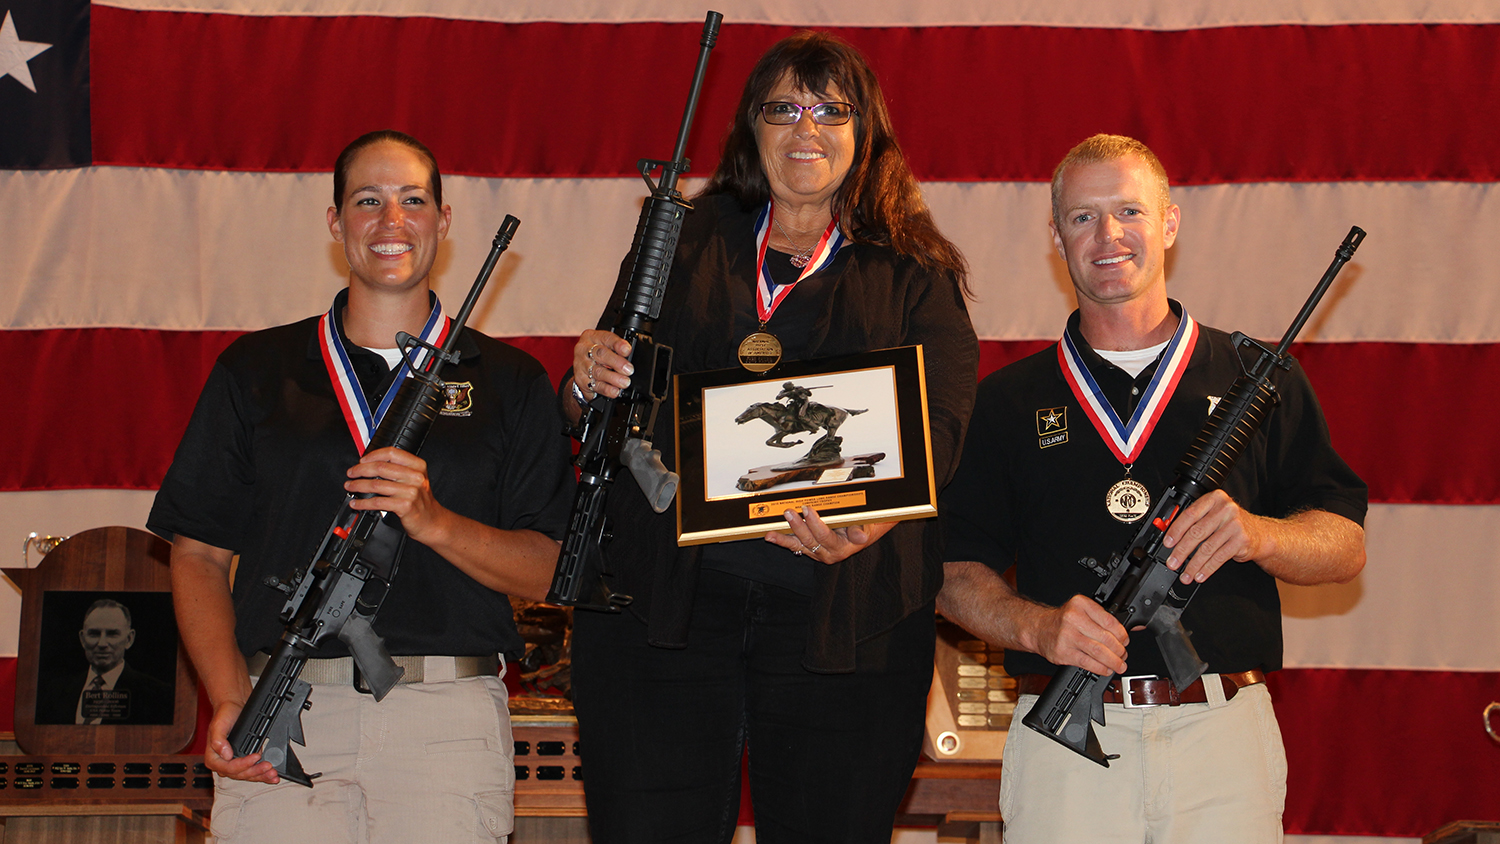 Nancy Tompkins Wins 2015 NRA National Long Range Championship